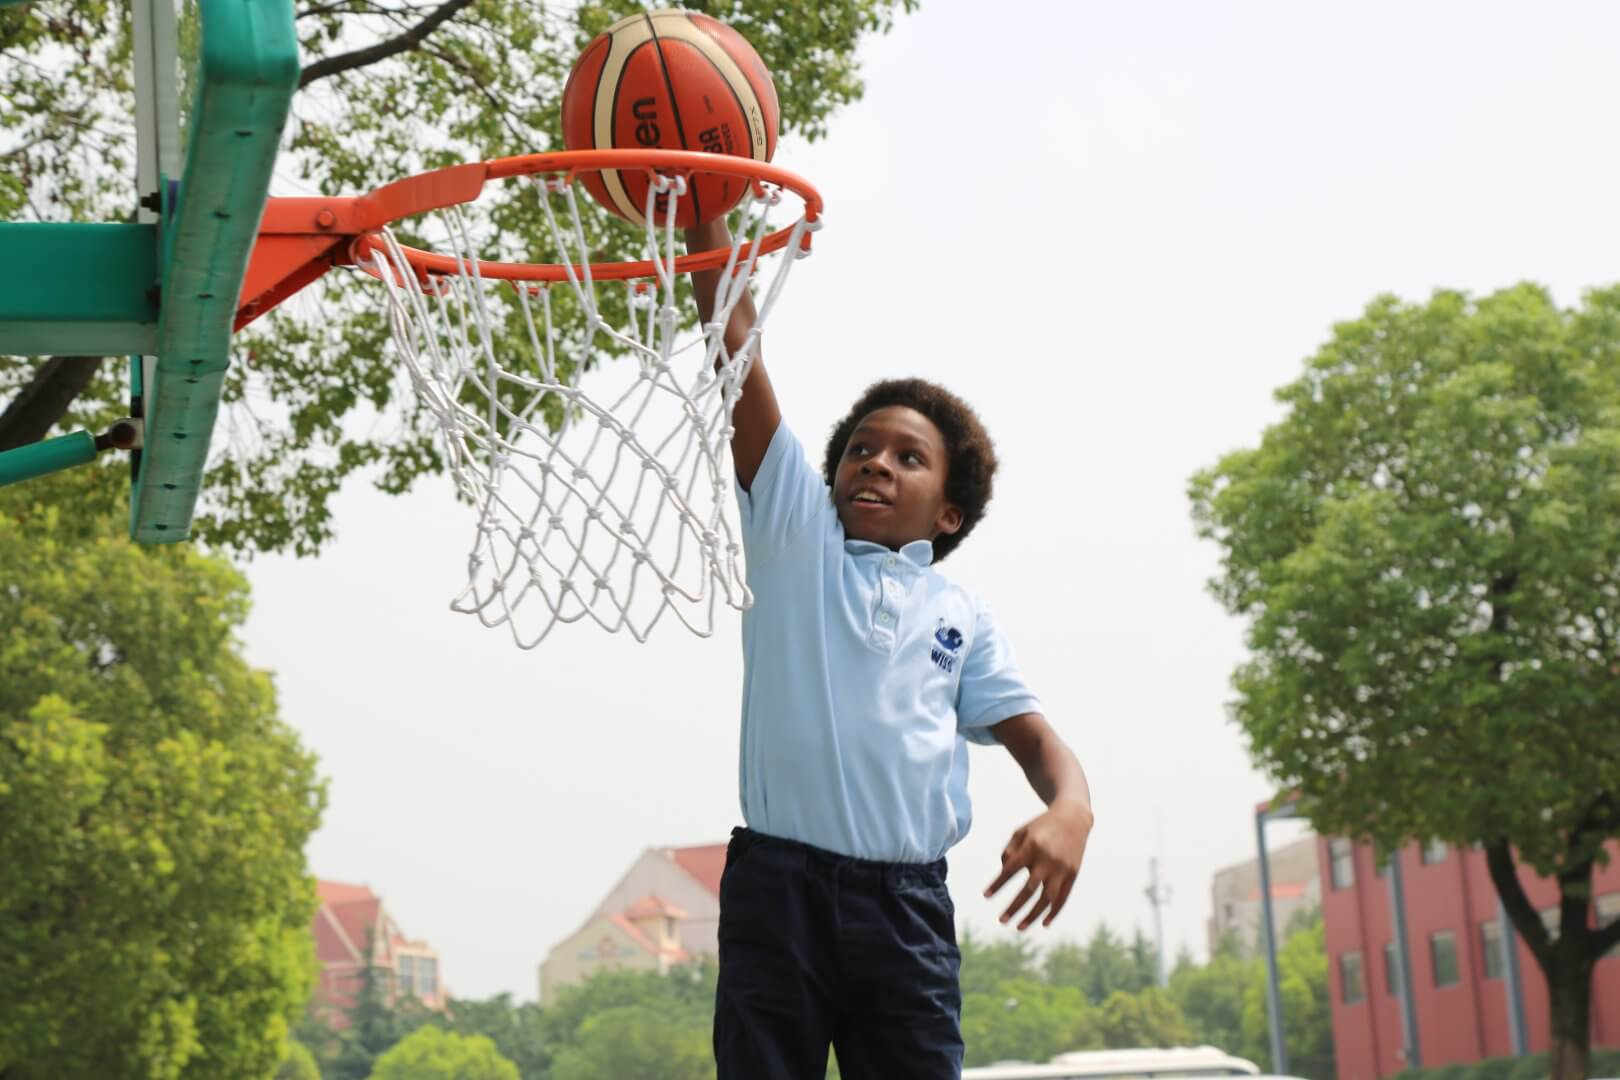 Christopher playing basketball at WISS